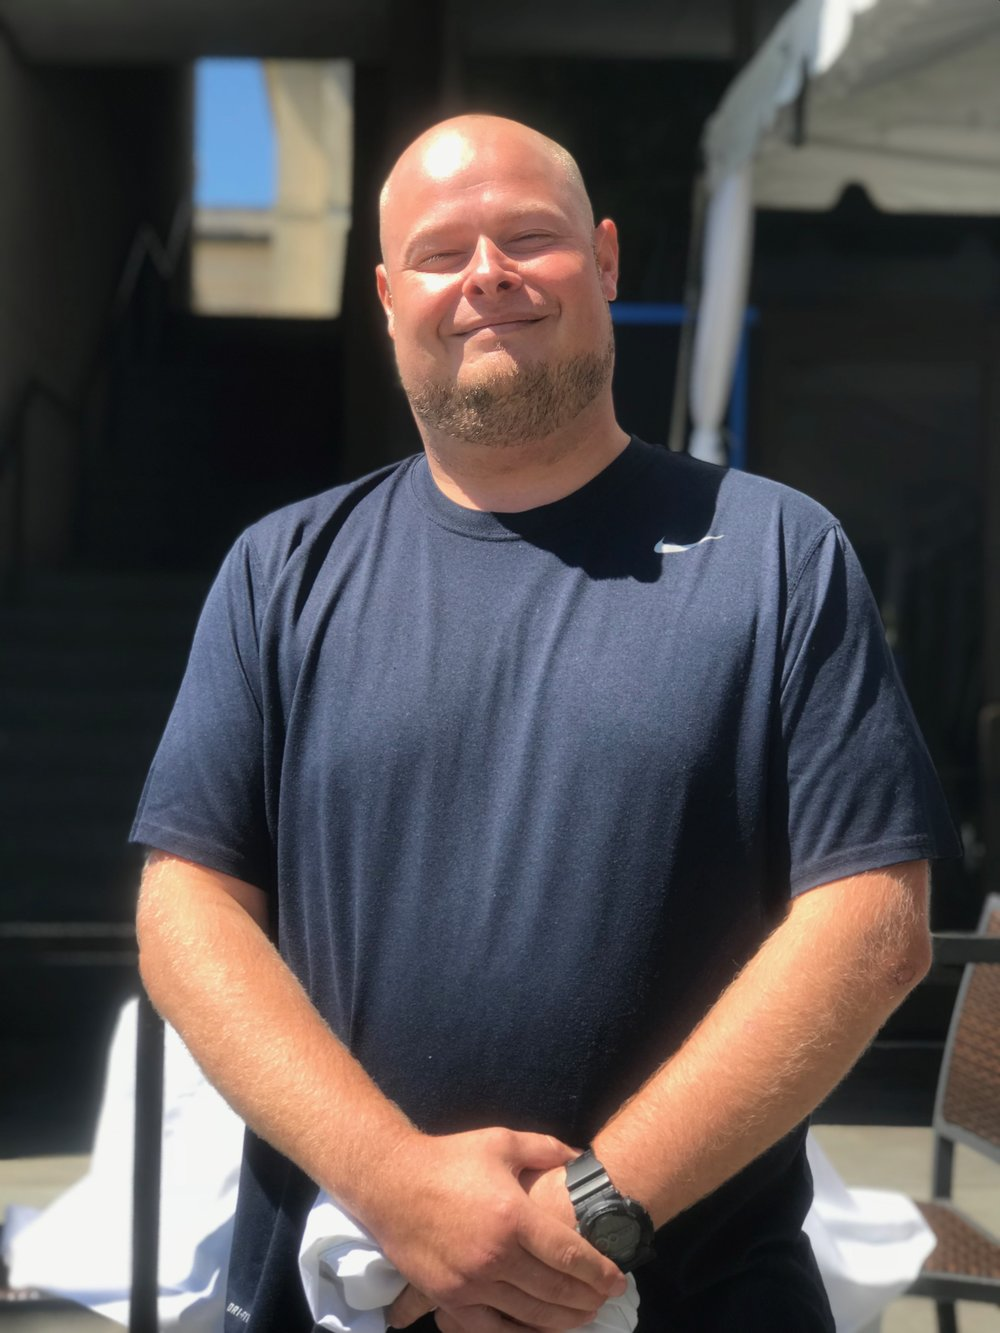 Ed Knott, Chef De Partie/ Sous Chef  Born and Raised in Maryland, Ed has been a part of the Gertrude's Family for over a decade. Before he came to Gertrude's Ed honed his skills at many of Baltimore's iconic restaurants such as Joy America, Sisson's, Porter's and The Rusty Scupper.